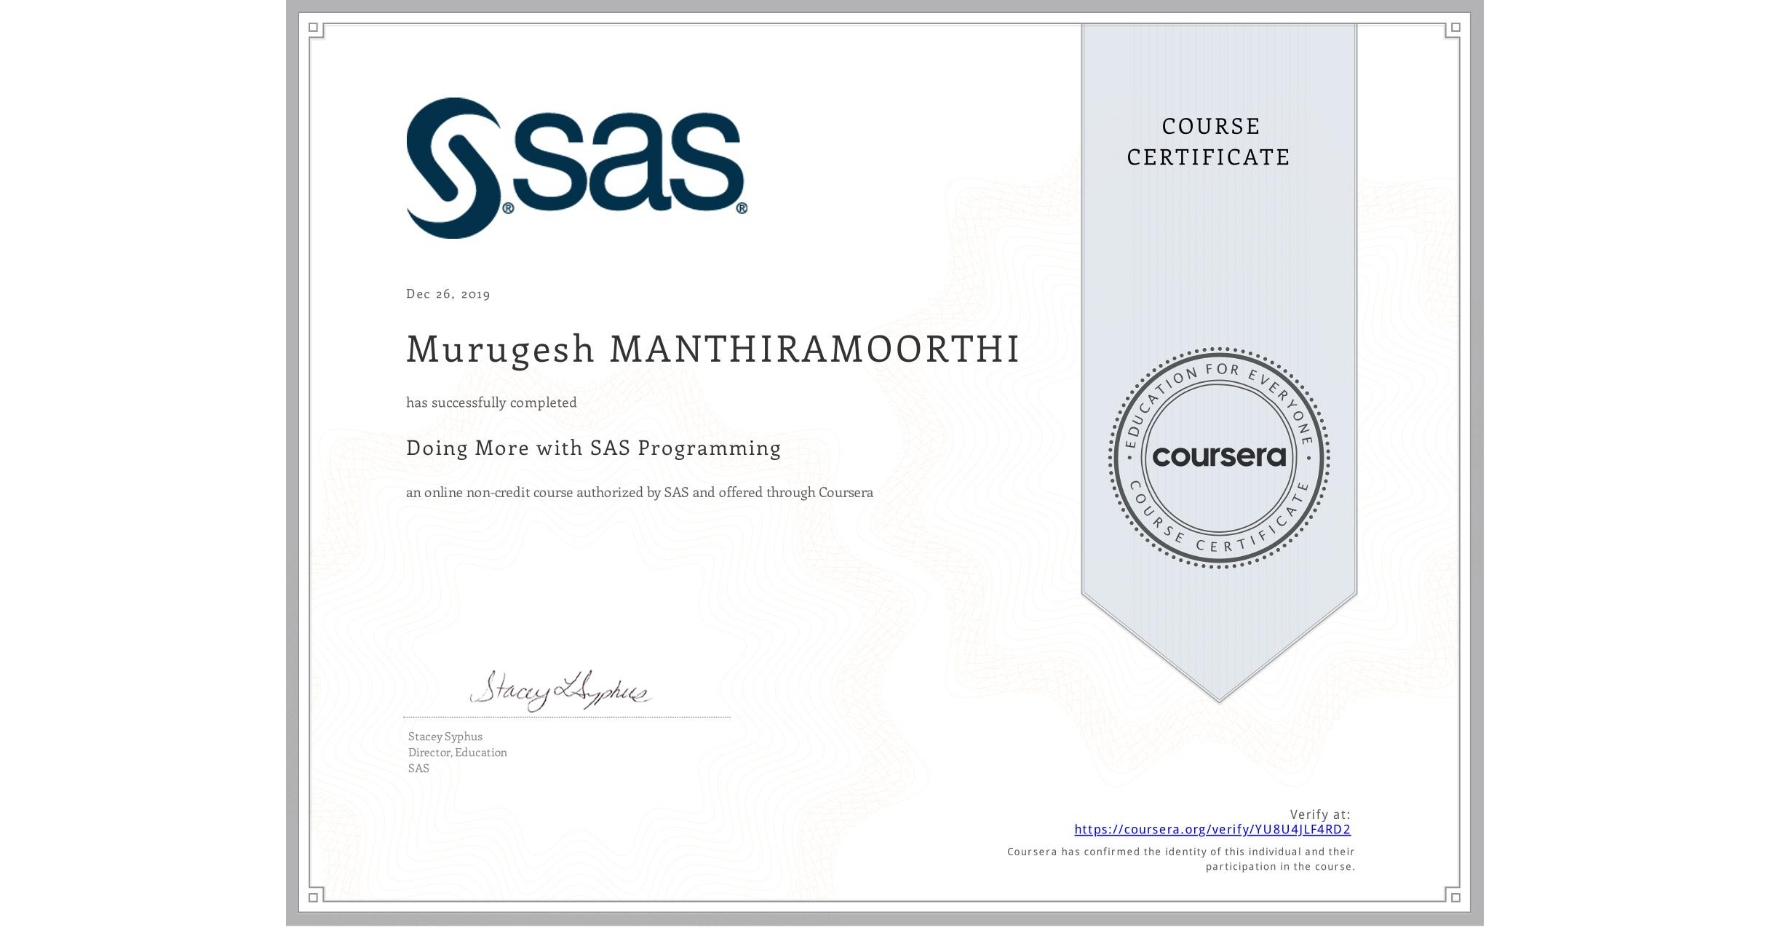 View certificate for Murugesh Manthiramoorthi, Doing More with SAS Programming, an online non-credit course authorized by SAS and offered through Coursera